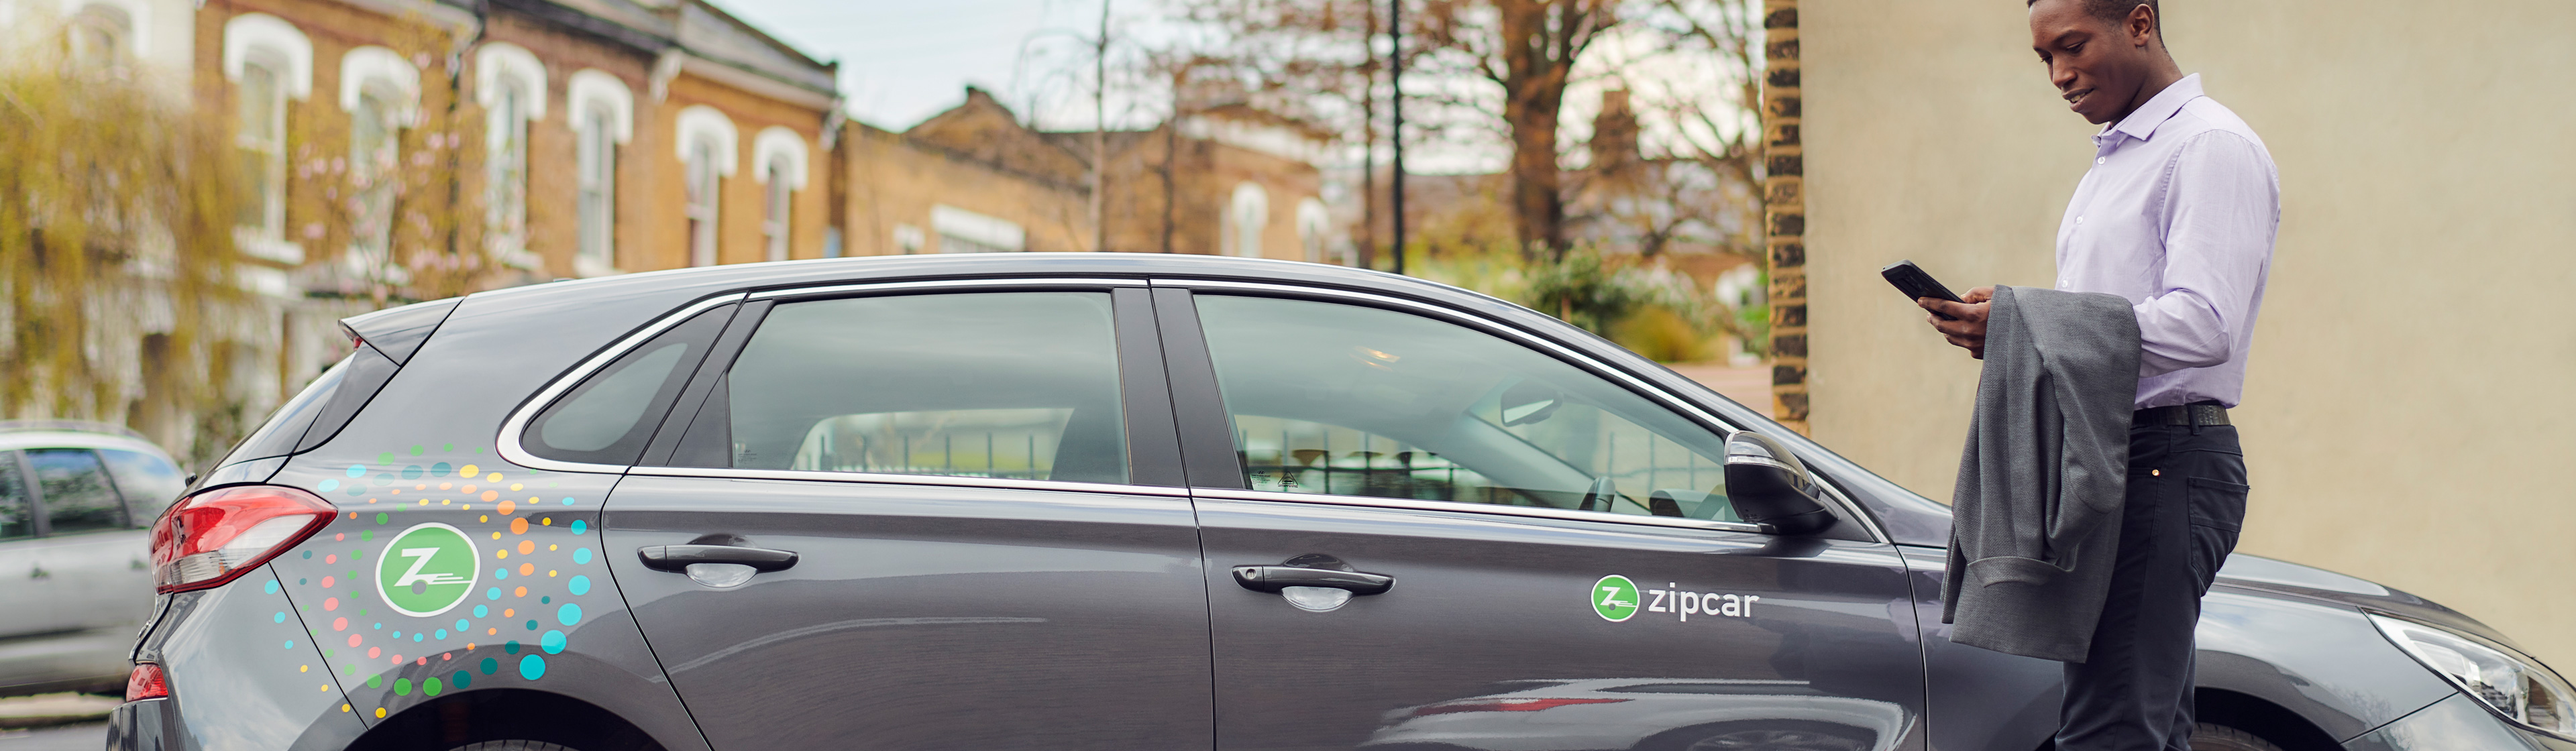 business growth with zipcar